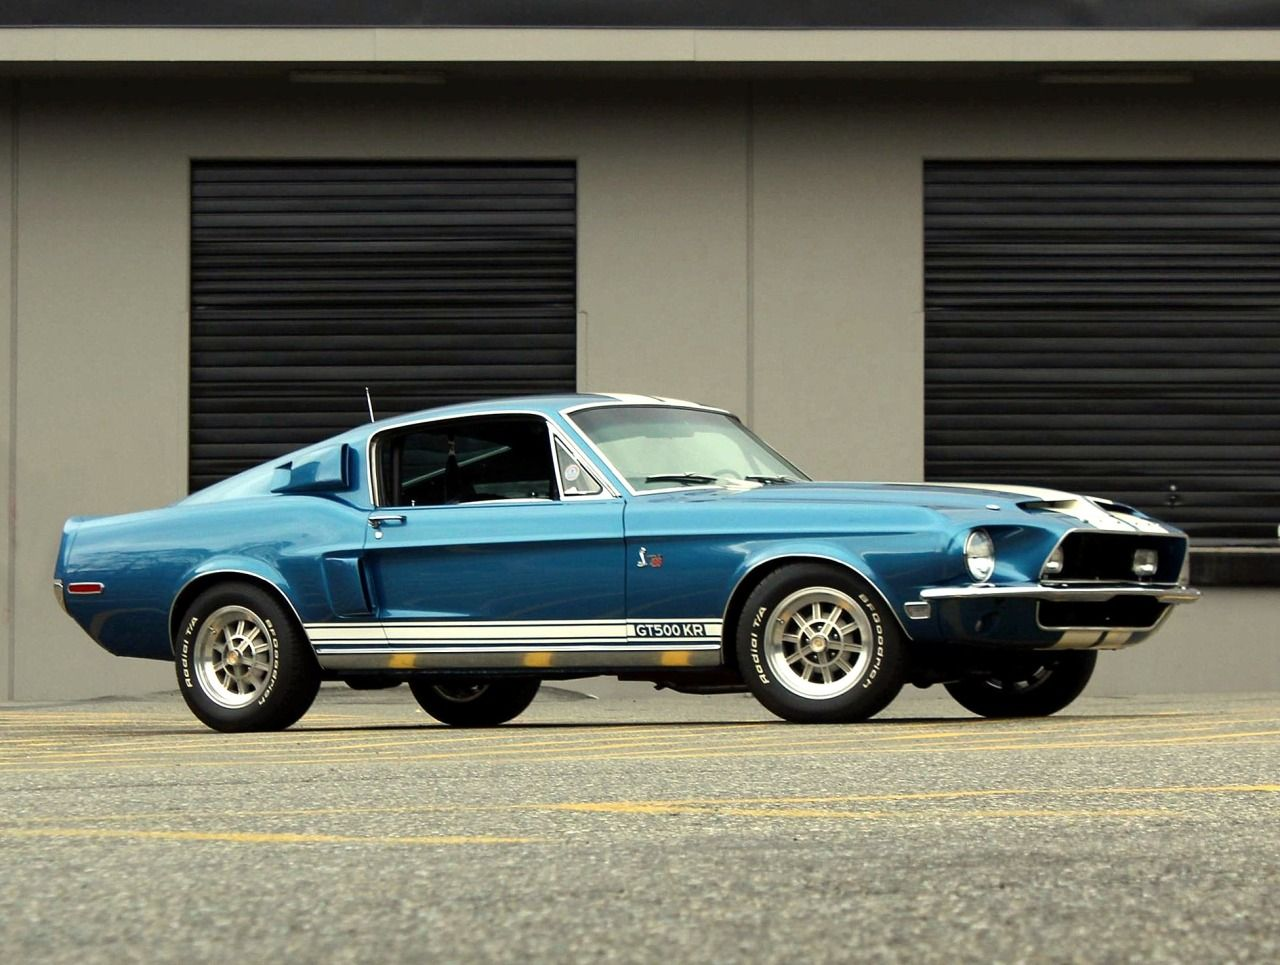 King of the road 1968 shelby mustang 428 gt500kr